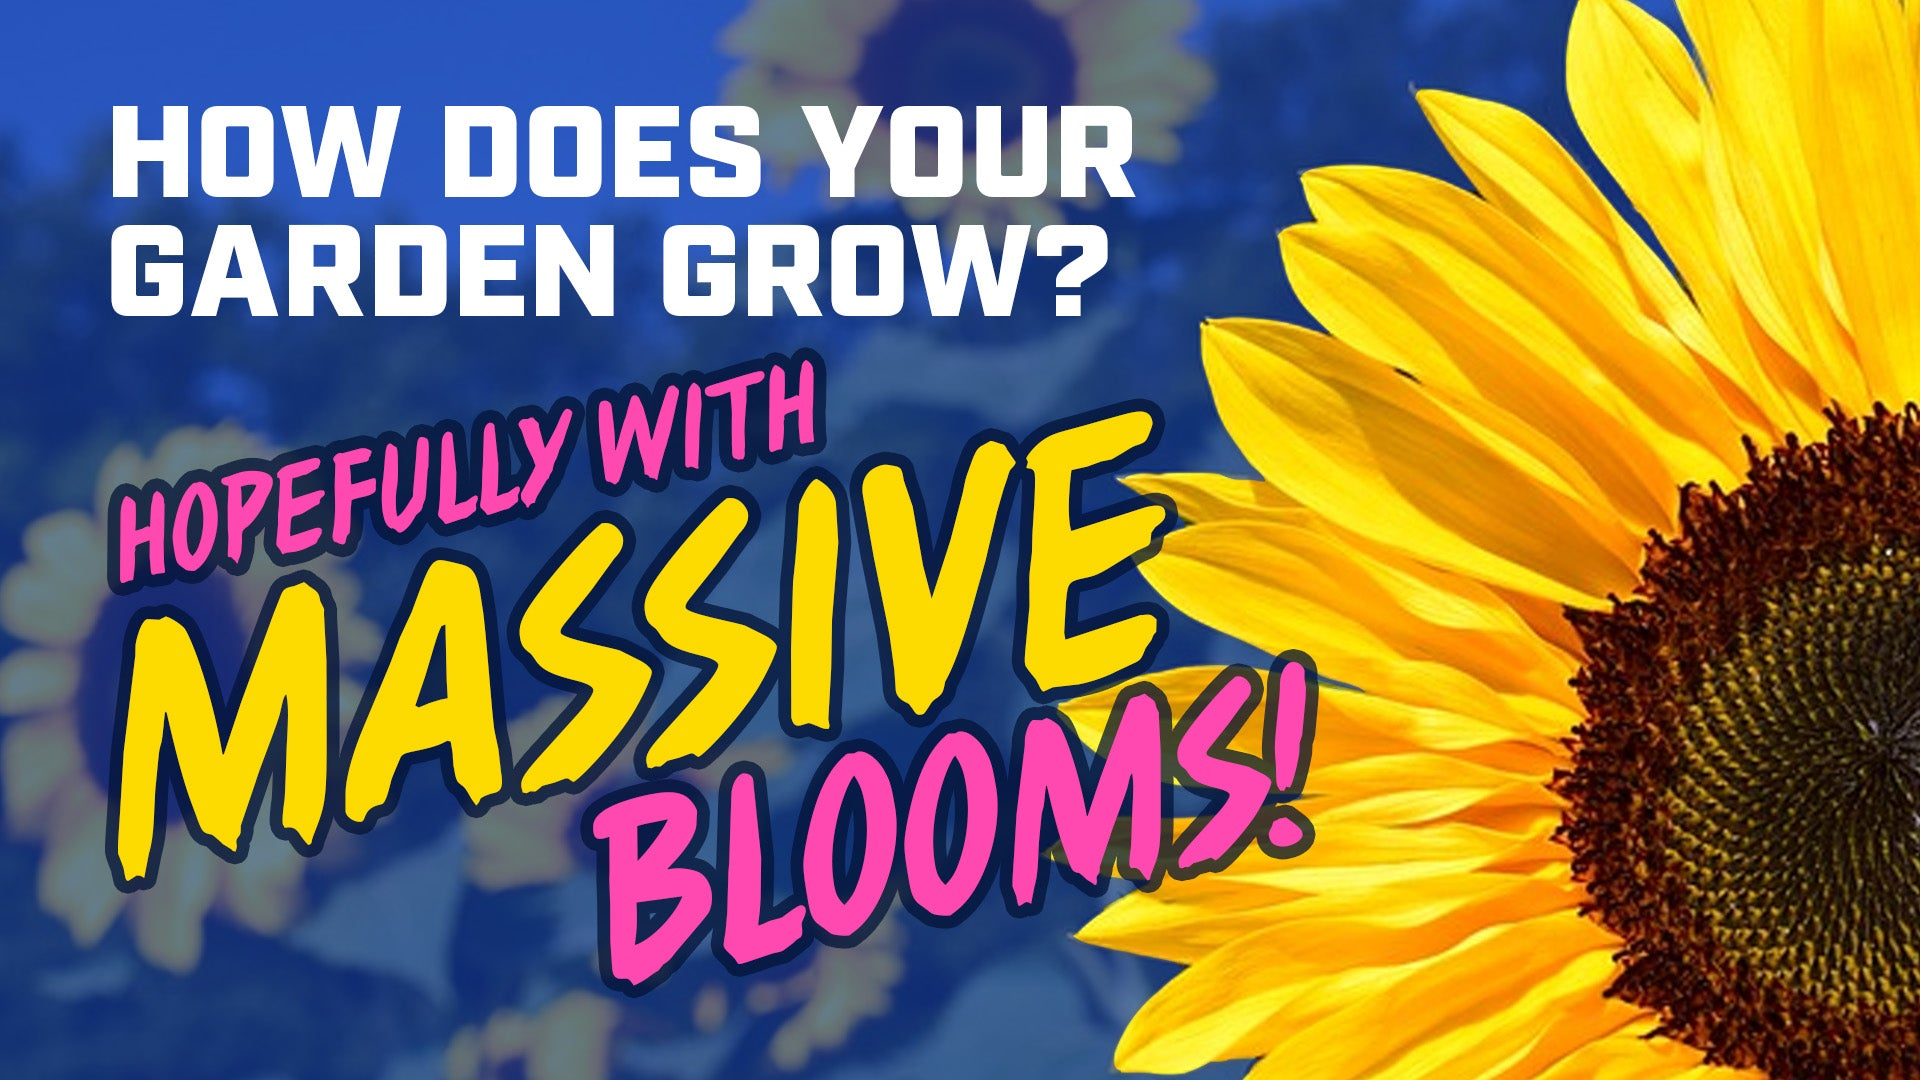 How does your garden grow? Hopefully with MASSIVE blooms!